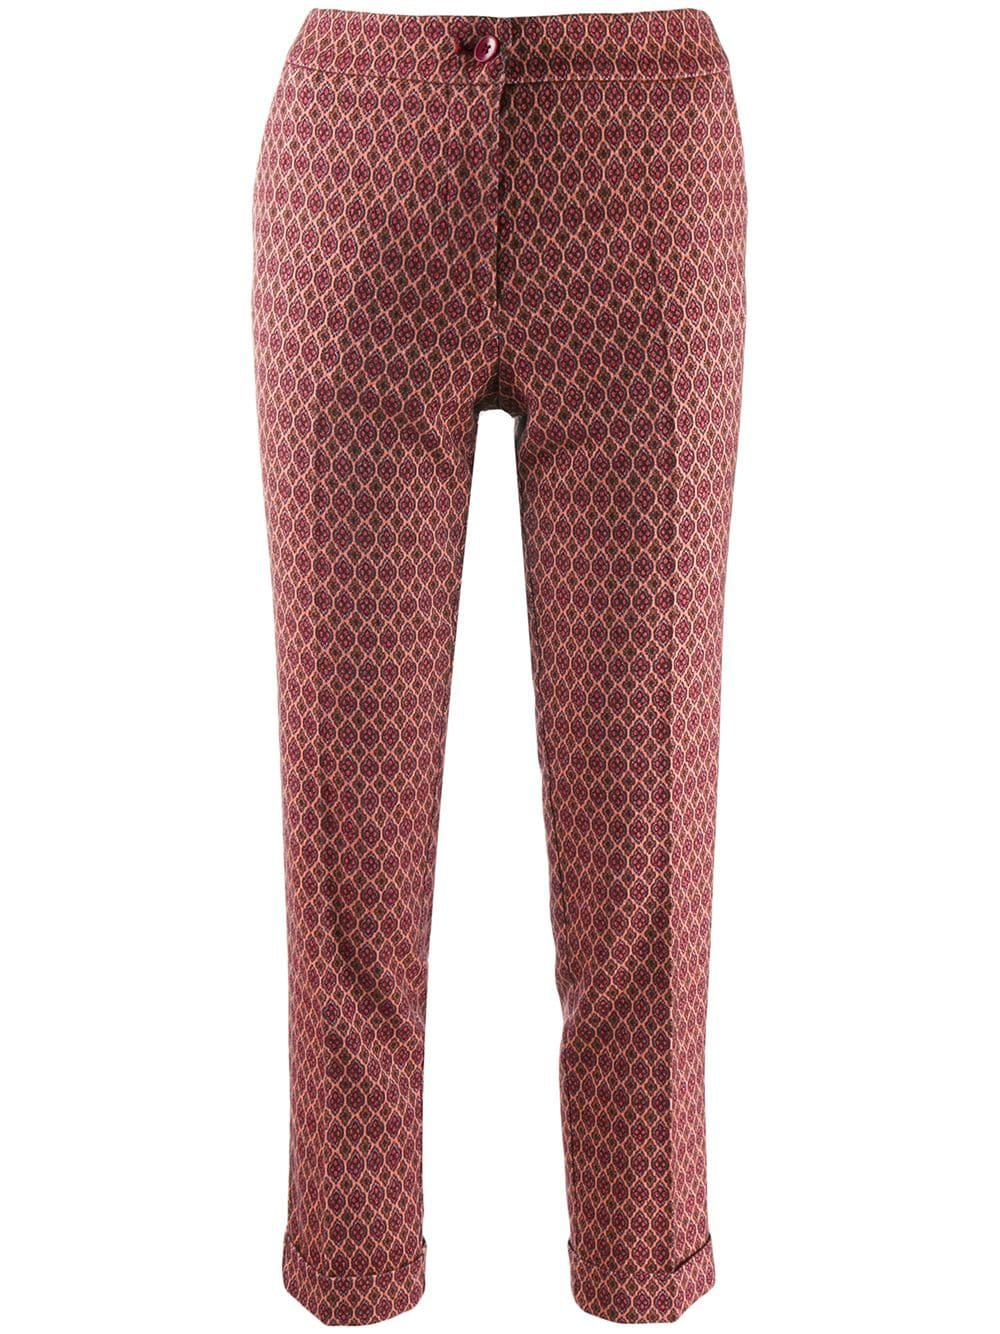 Etro Cropped Slim Fit Trousers - Farfetch